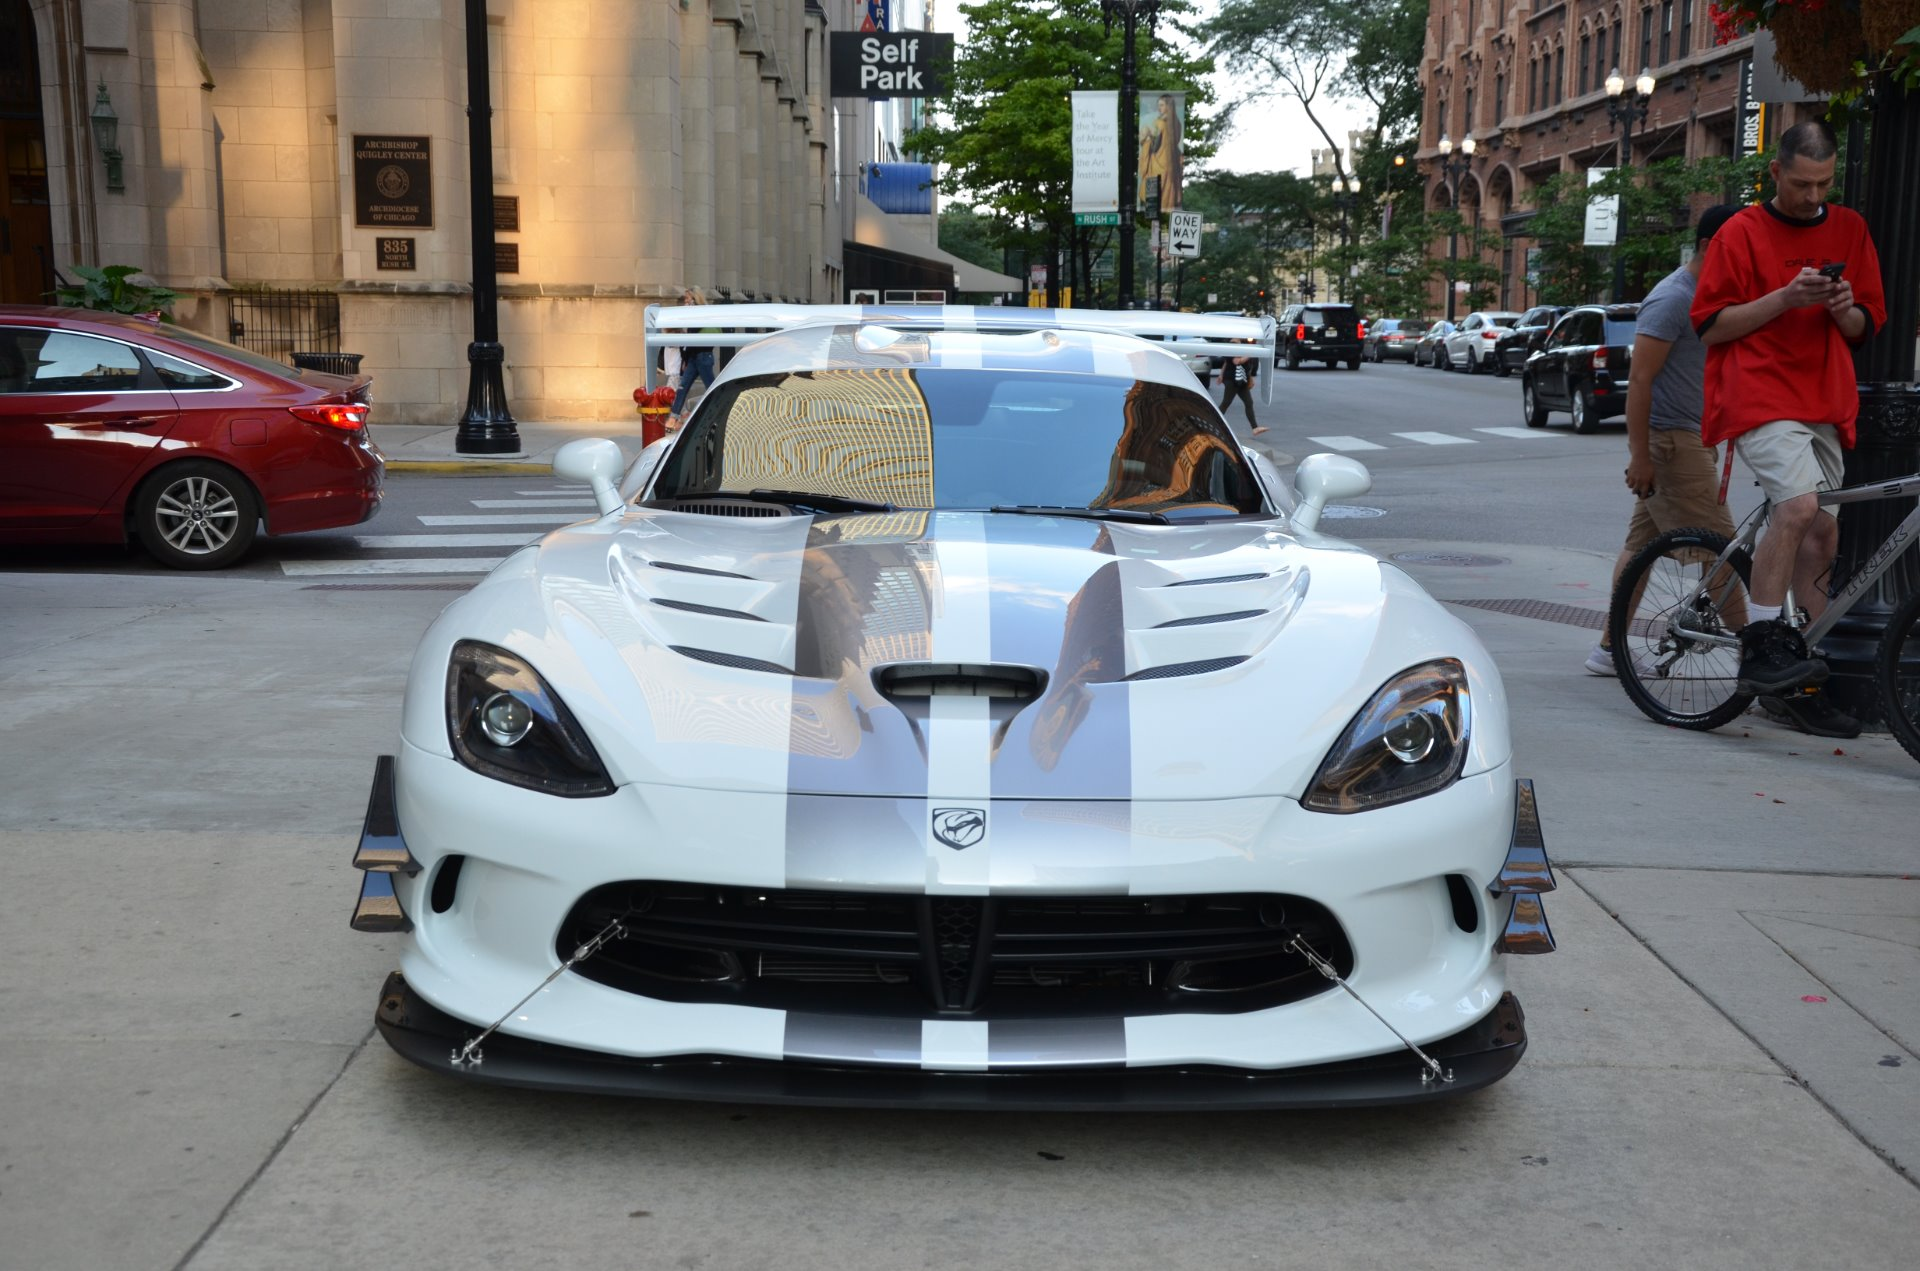 2016 dodge viper acr stock 00487 for sale near chicago il il dodge dealer. Black Bedroom Furniture Sets. Home Design Ideas